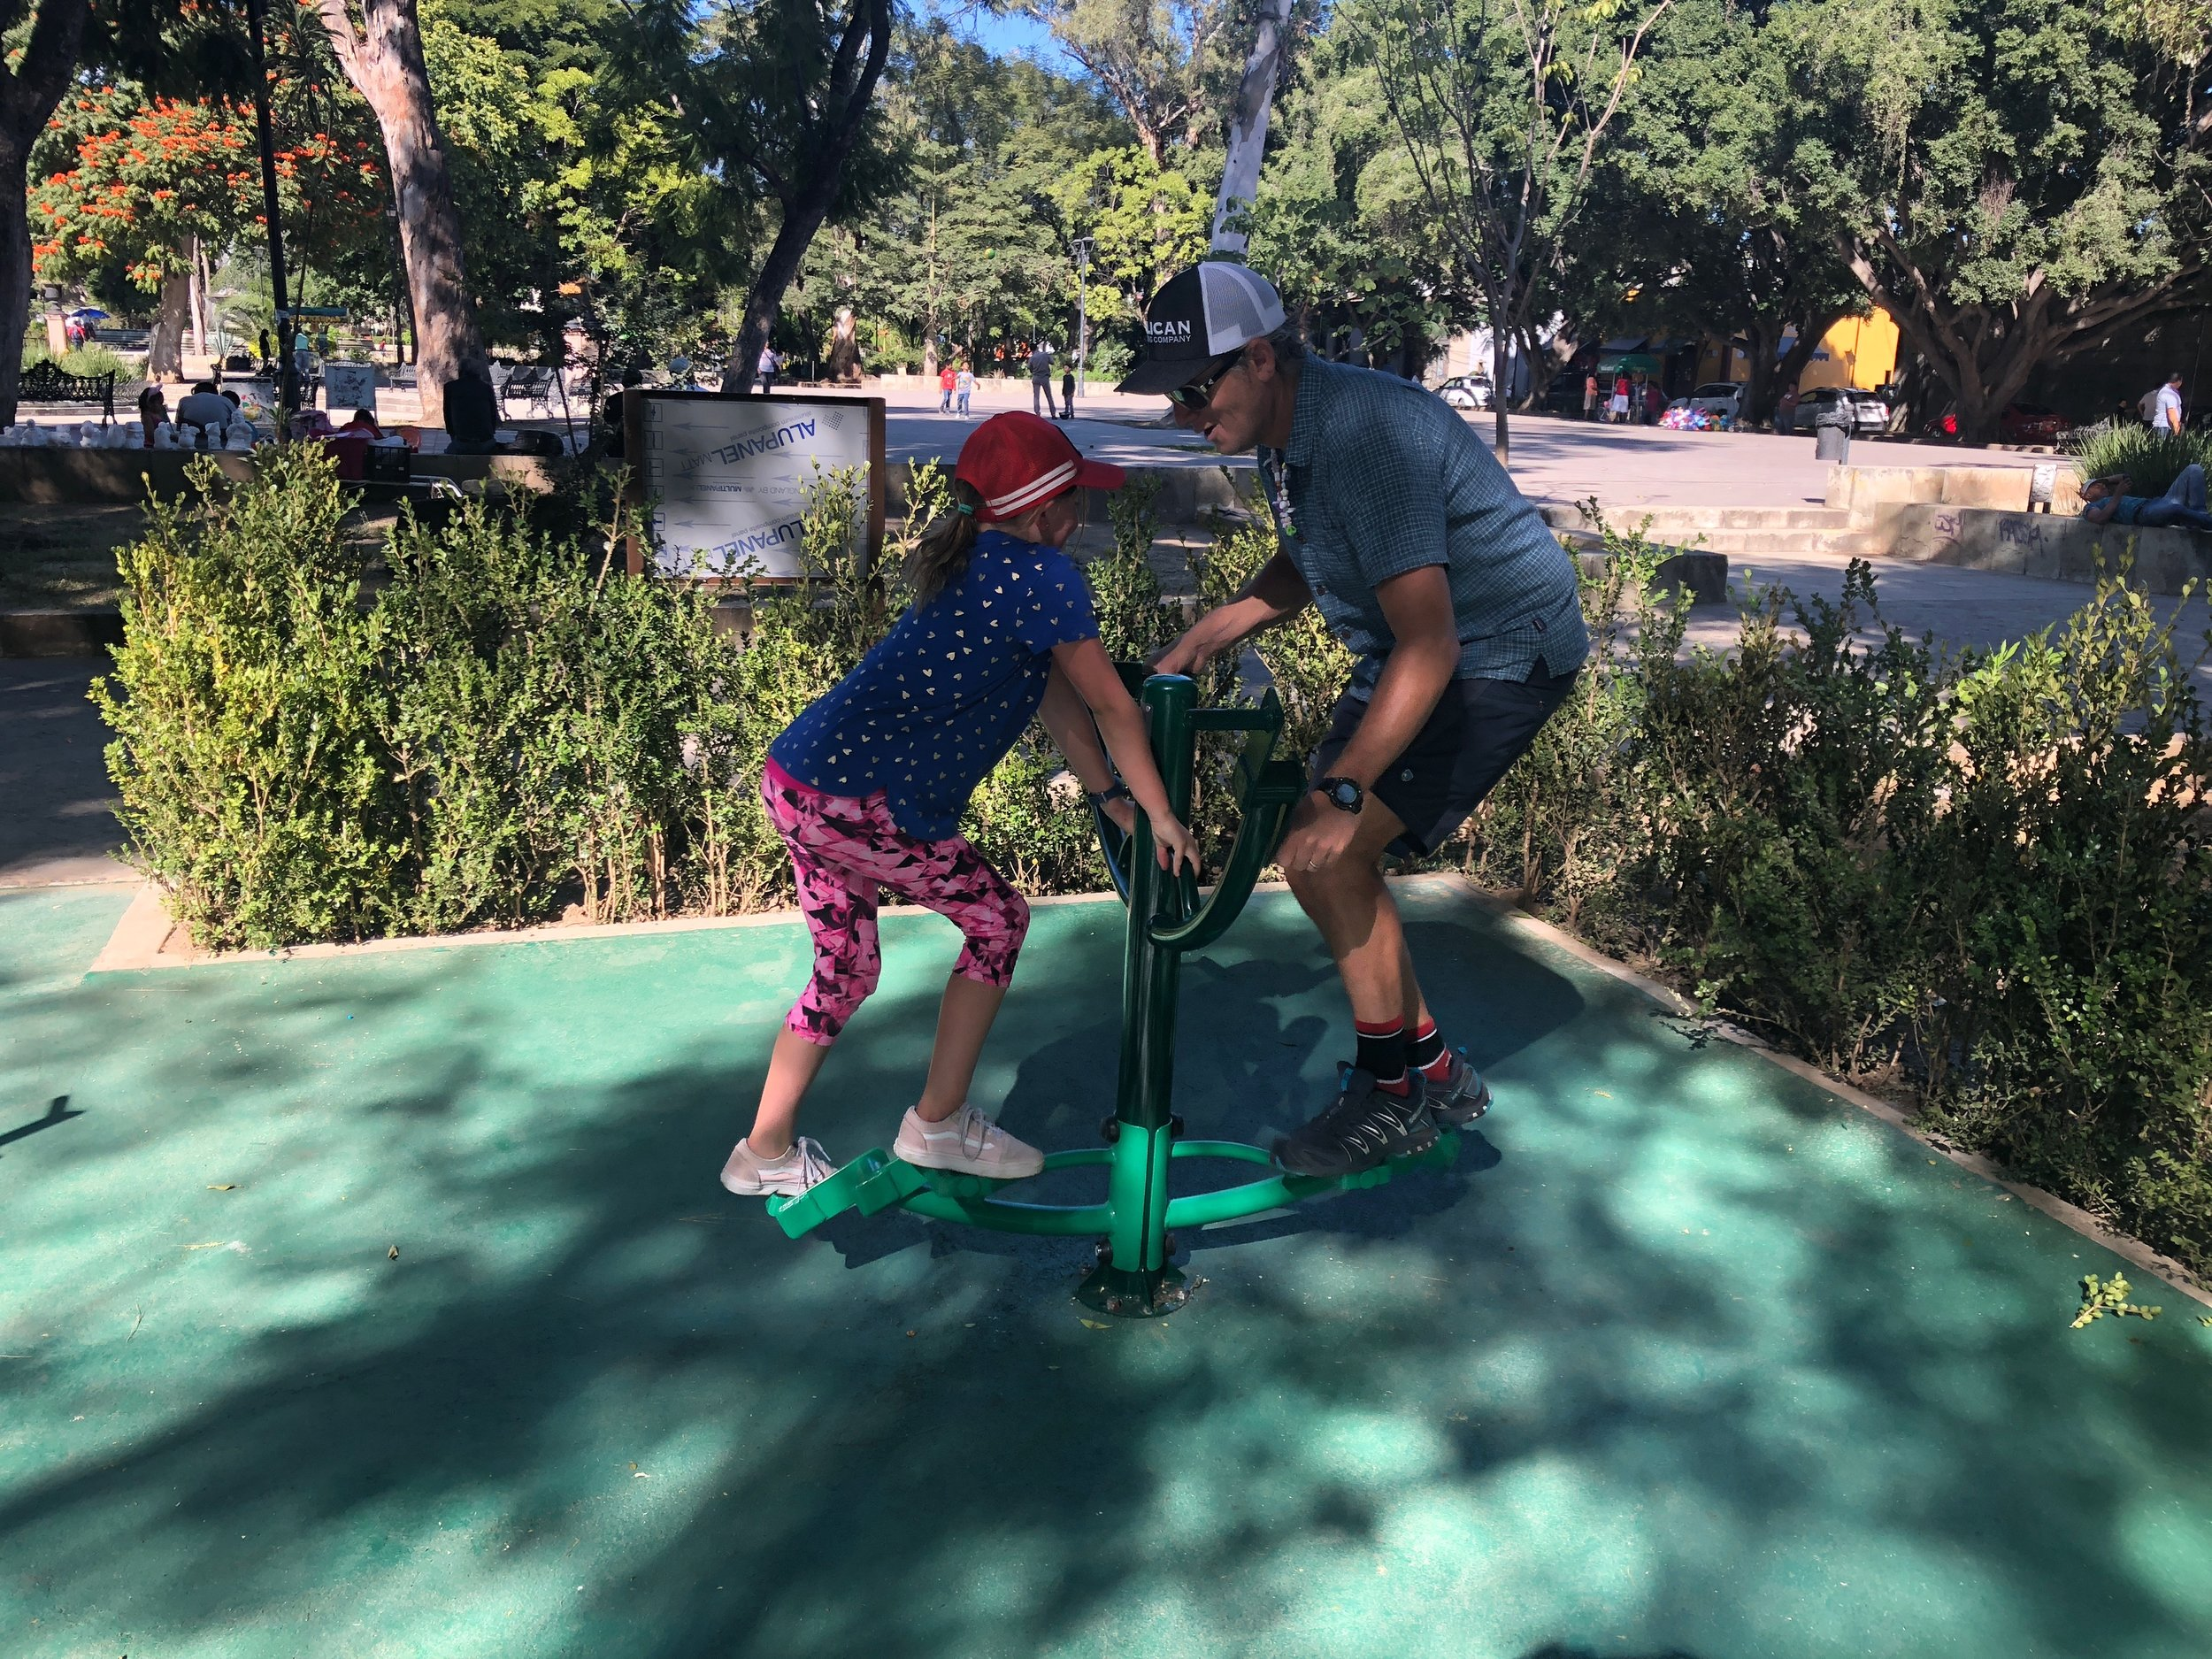 The parks aren't quite the same as in the states - but we have fun anyway!